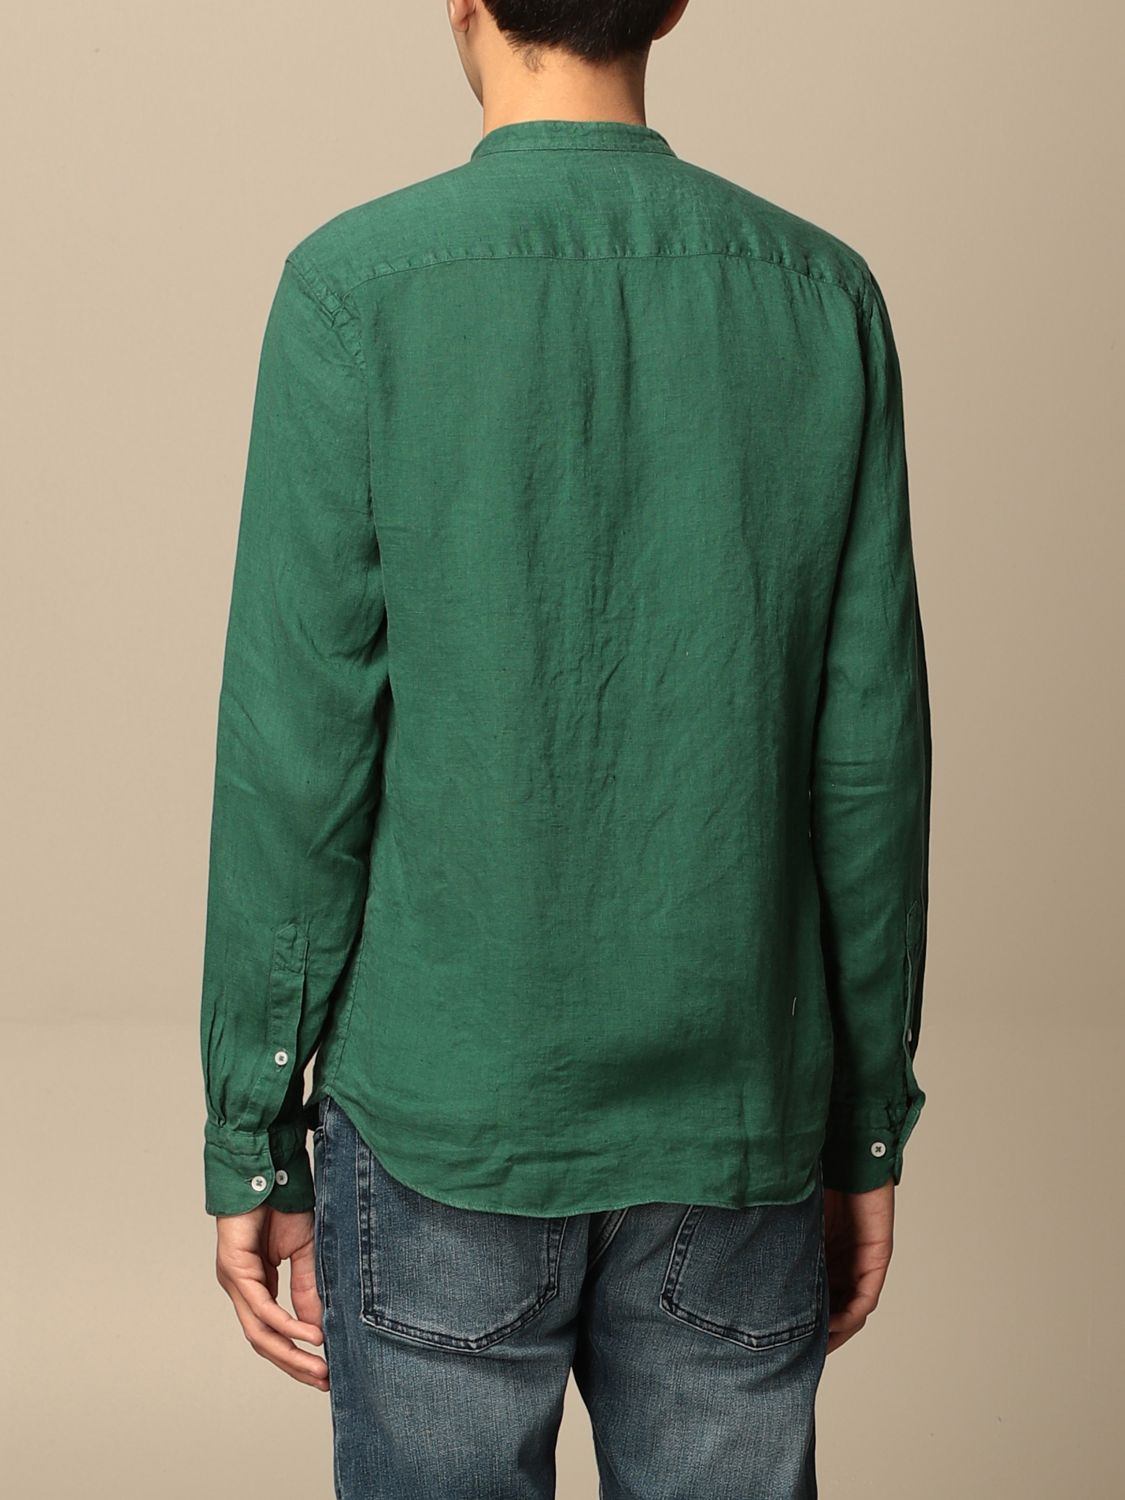 Chemise An American Tradition: Chemise homme Bd Baggies vert sapin 2